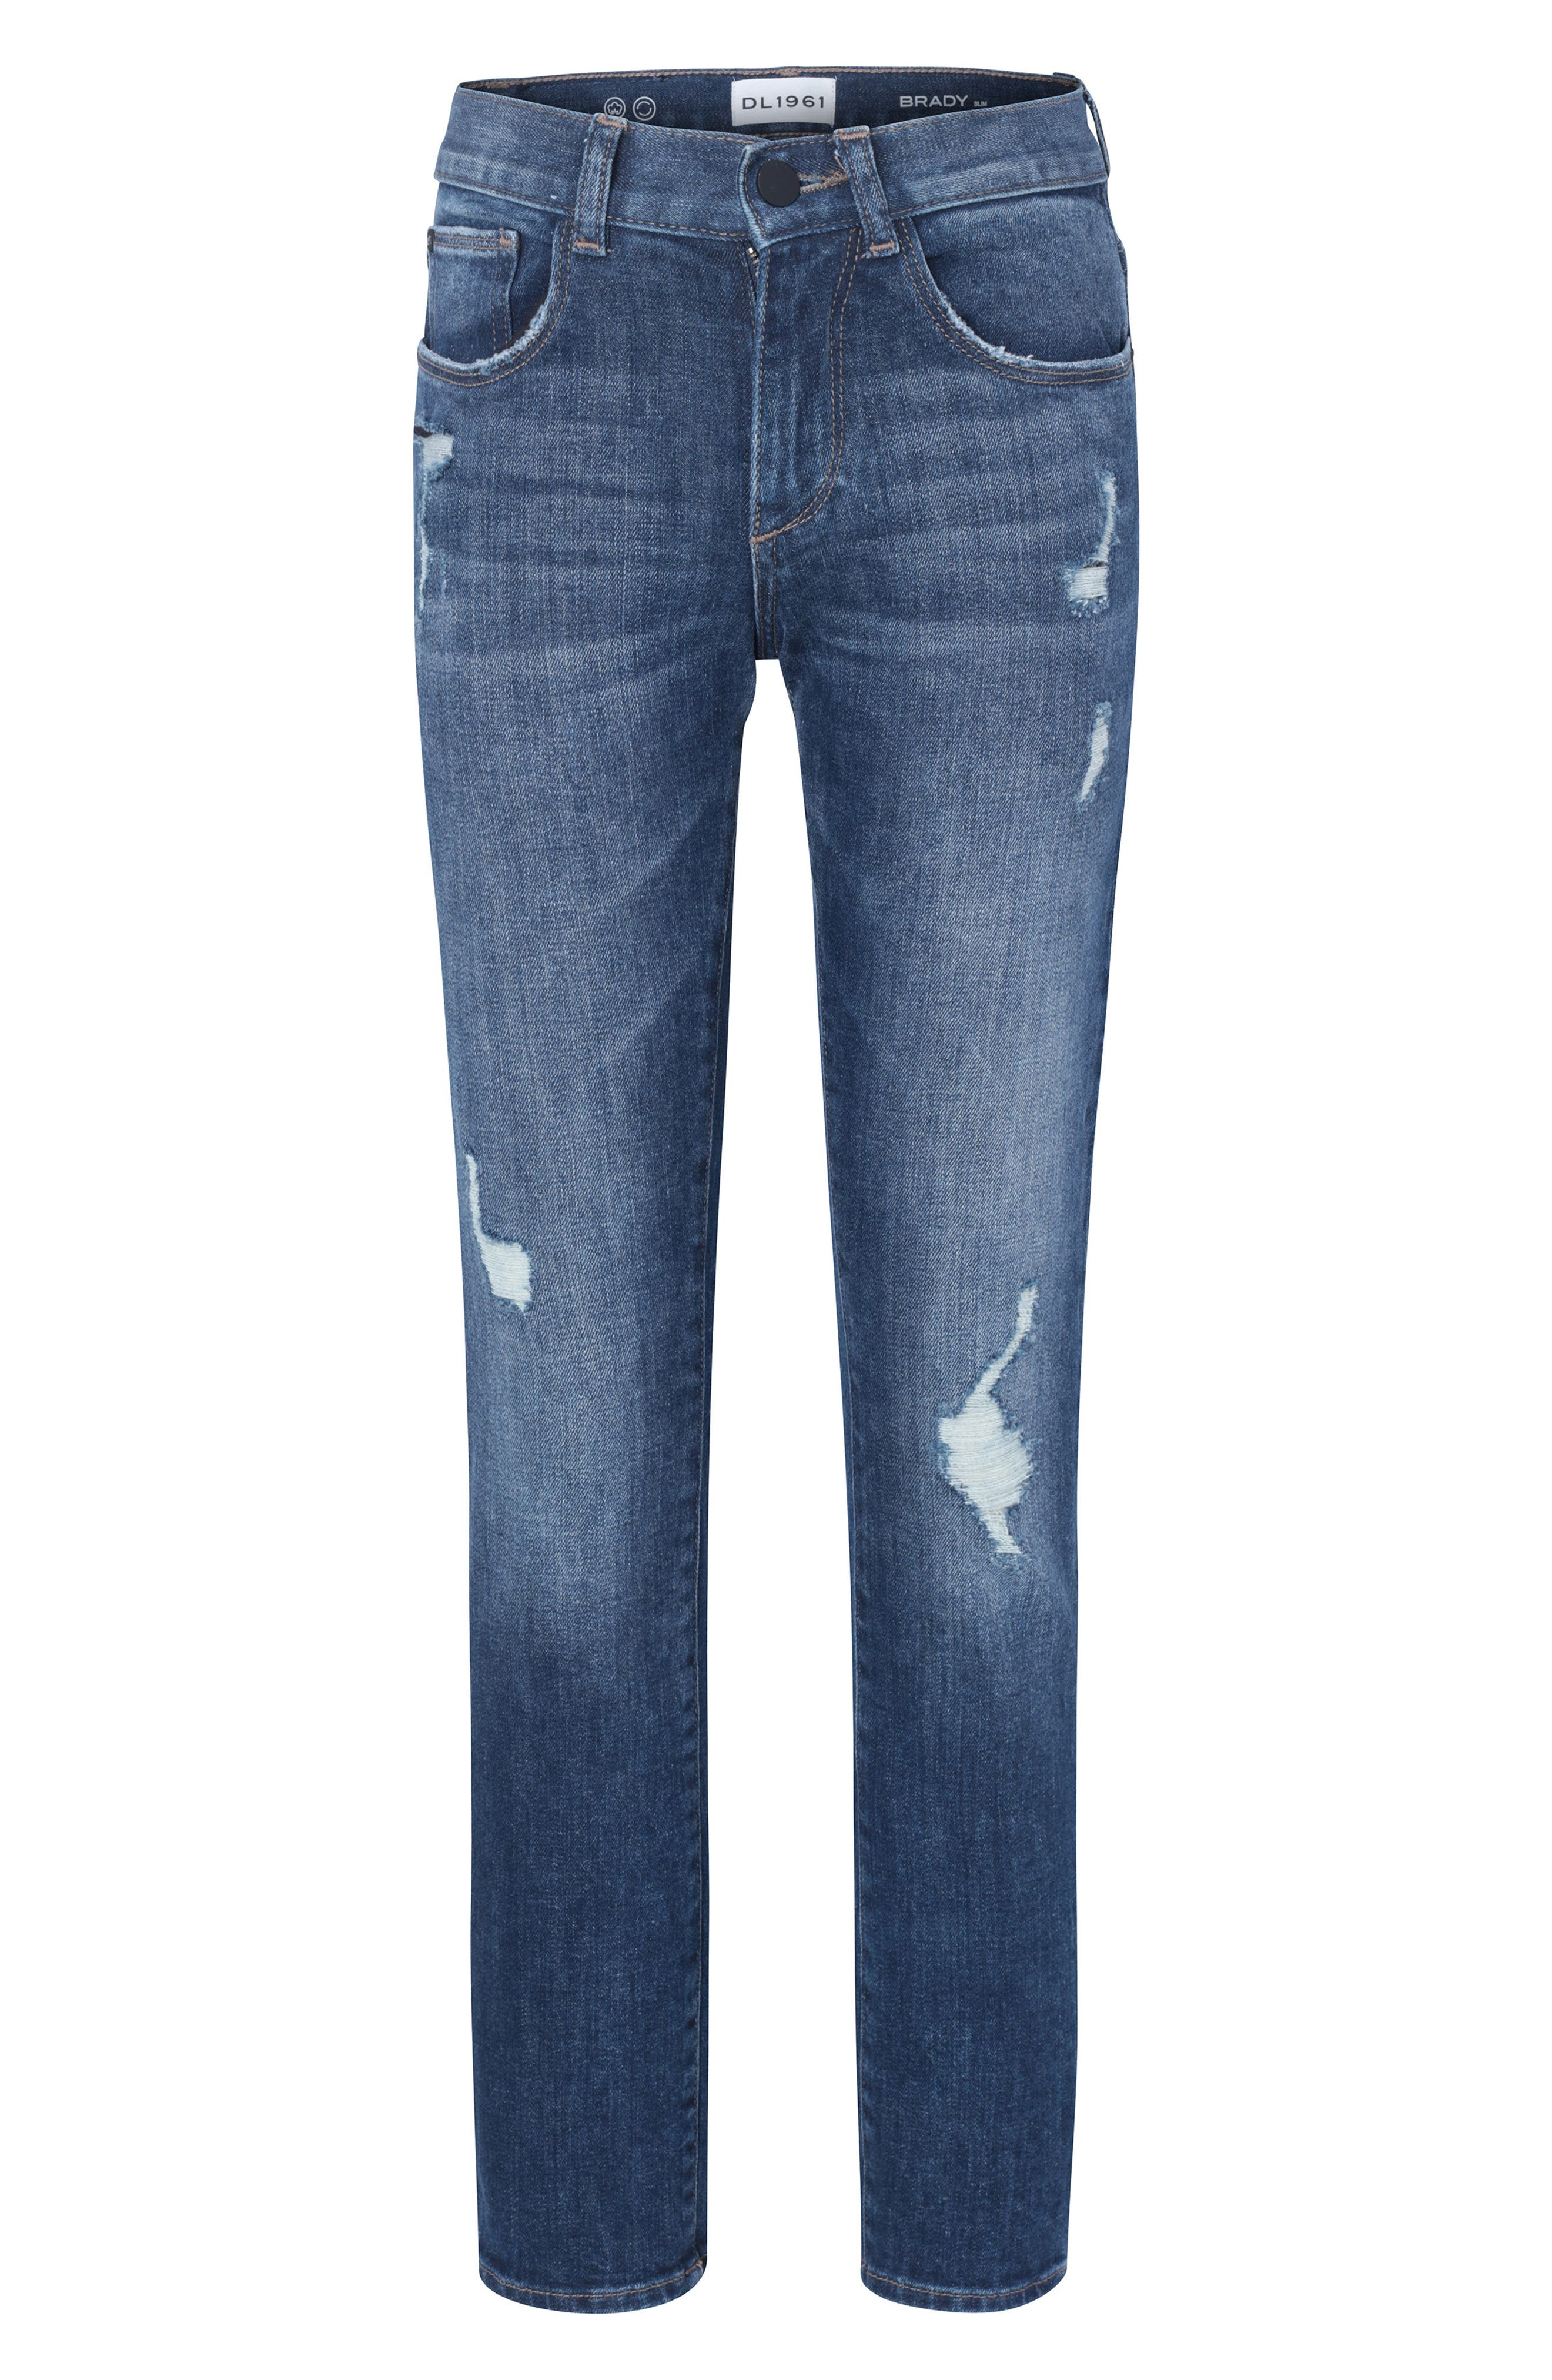 Brady Distressed Jeans,                             Main thumbnail 1, color,                             MOOD